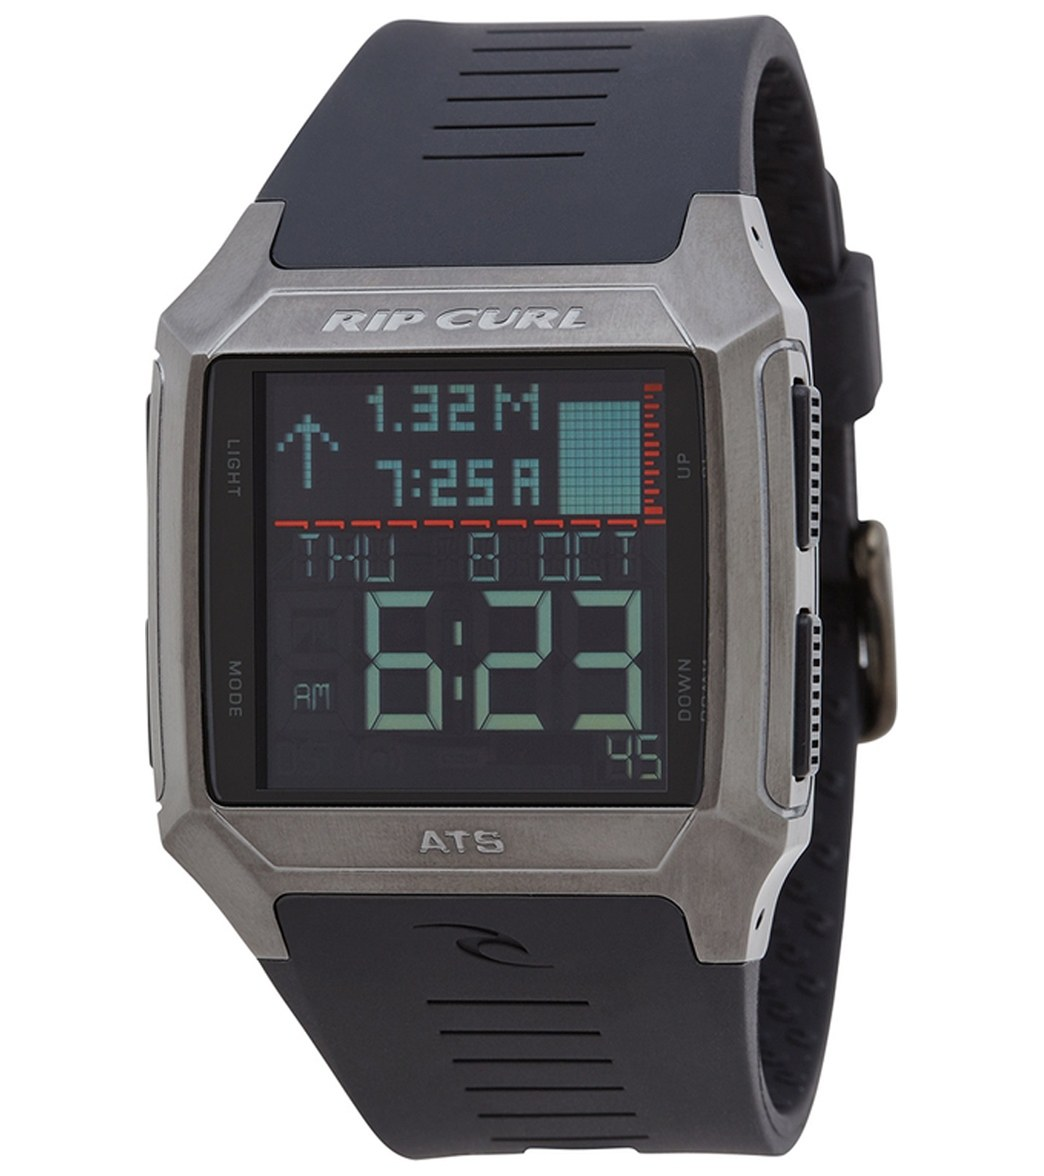 b4dcaf464f Rip Curl Rifles SS Tide Watch at SwimOutlet.com - Free Shipping